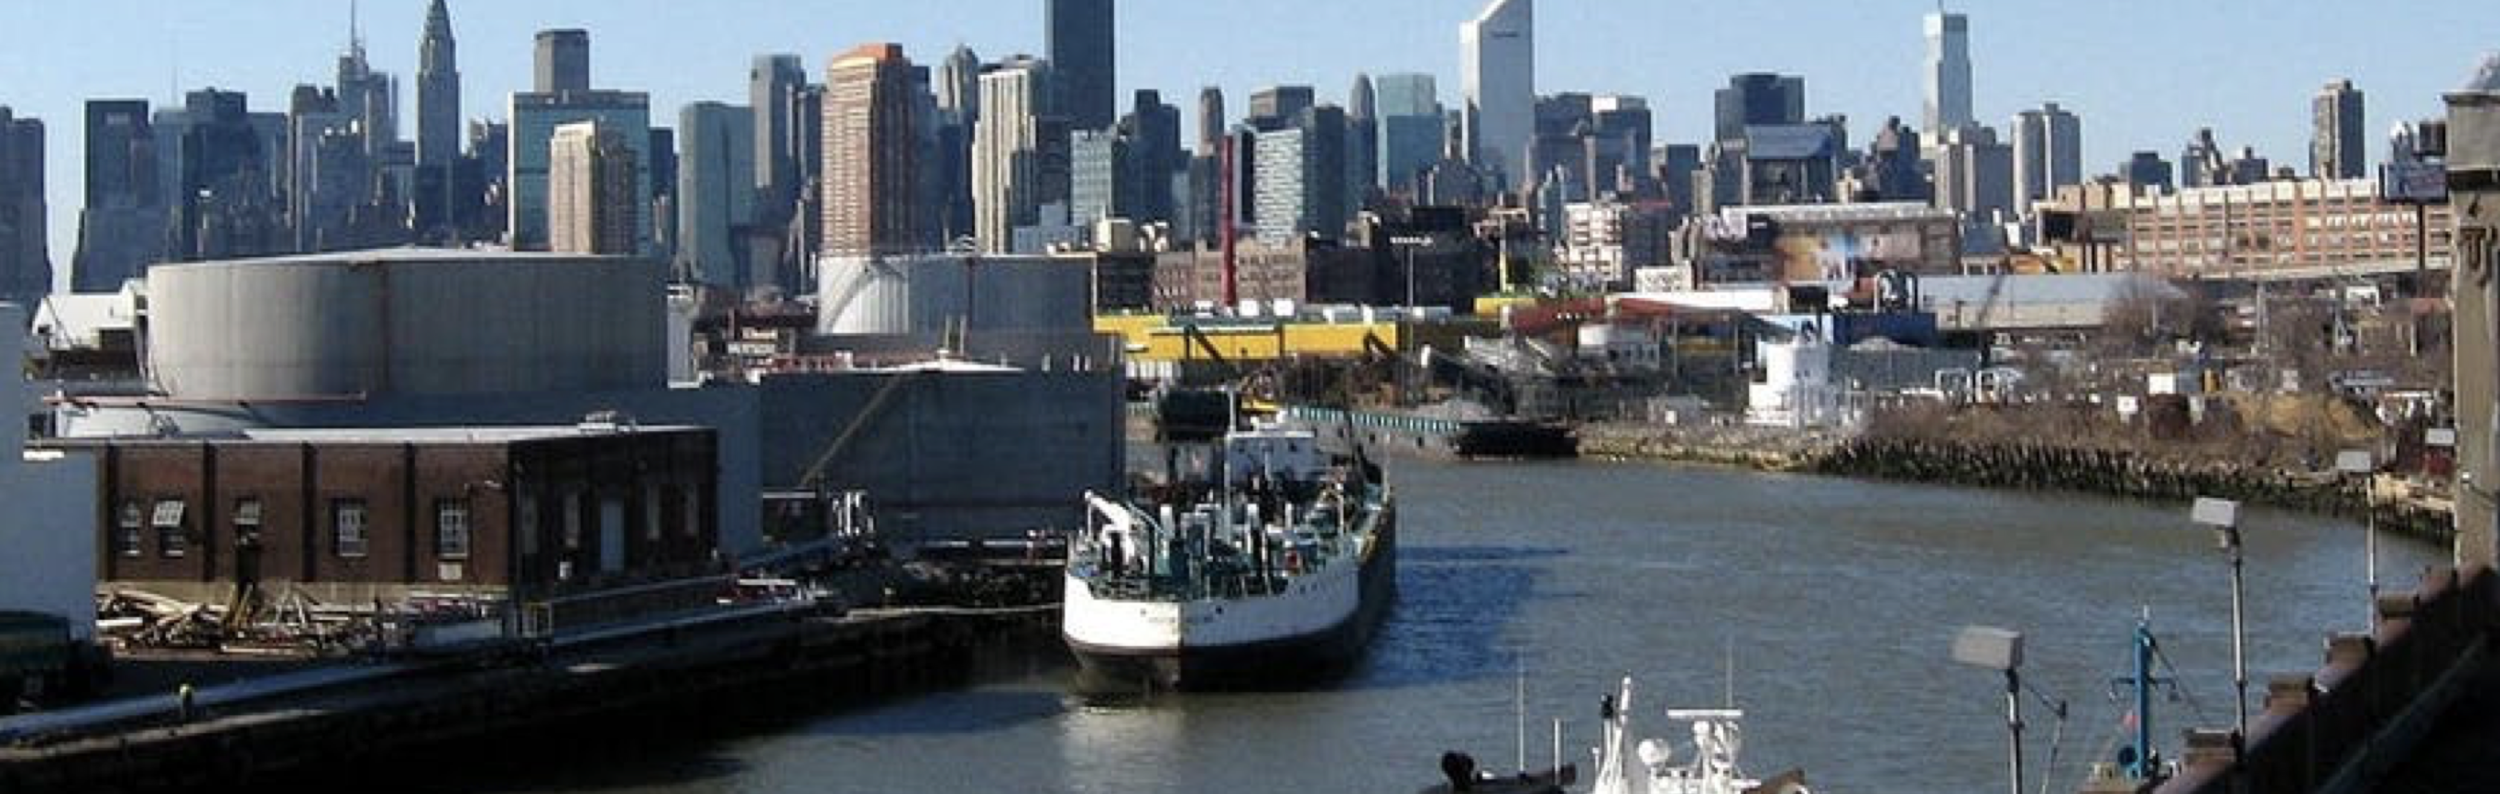 Small tankers unload along New York's Newtown Creek in 2008.